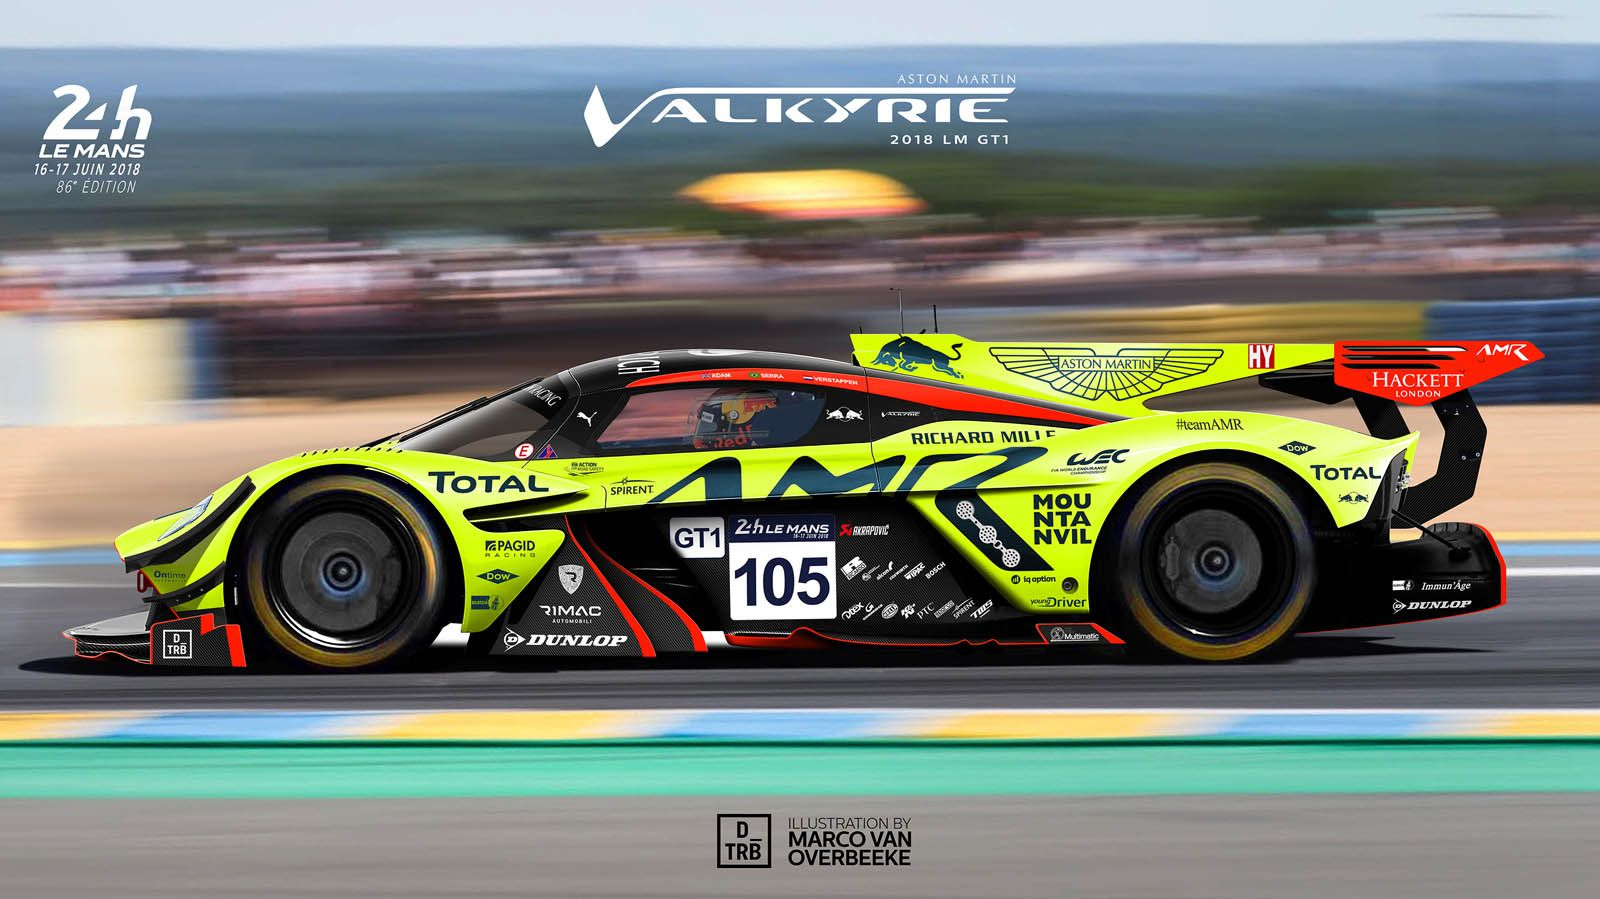 The Latest Hypercars Would Make Awesome Le Mans Racers Carscoops In 2020 Aston Martin Le Mans Racing